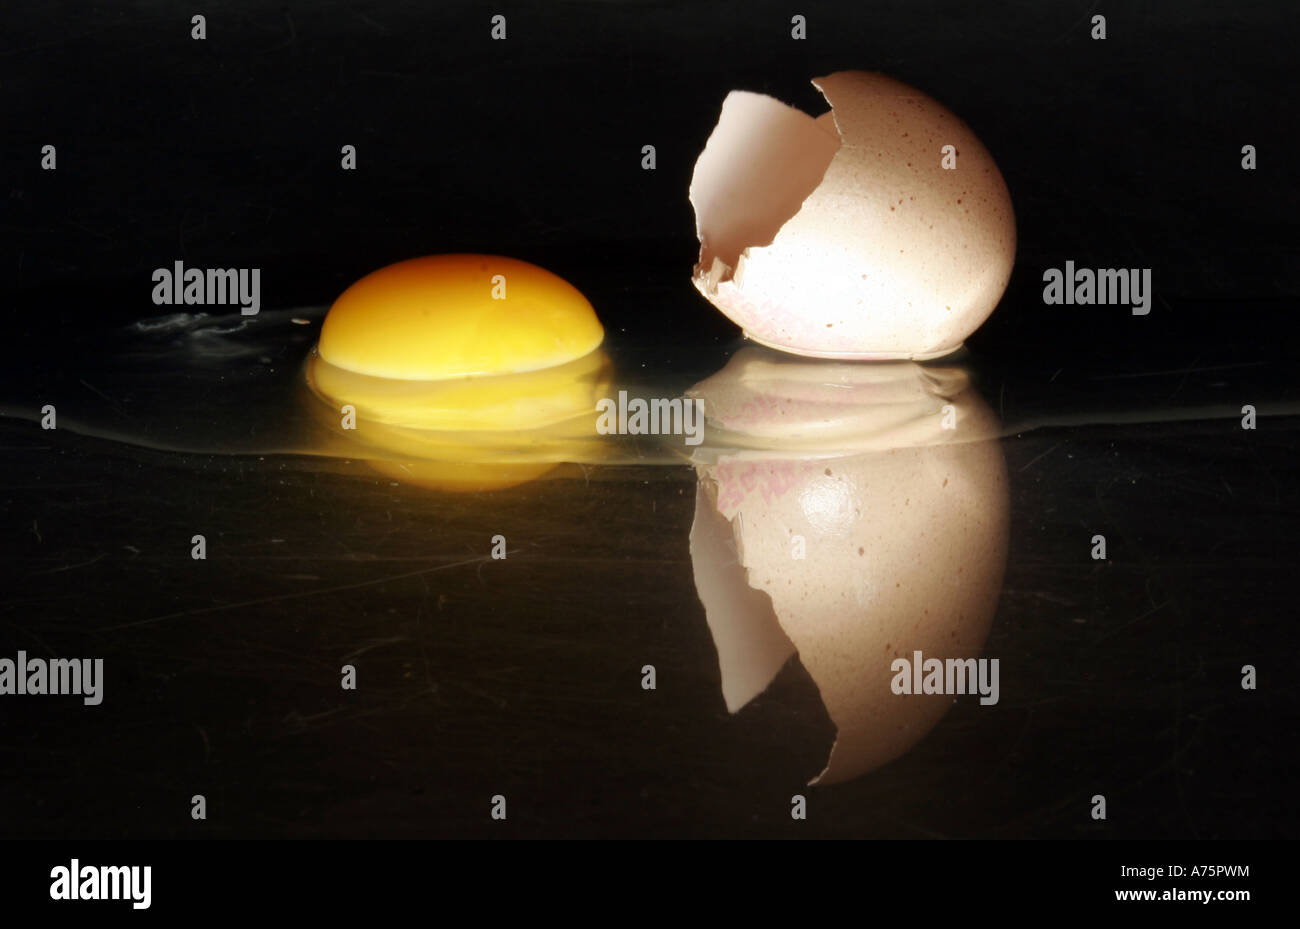 BROKEN  CHICKEN EGG AND SHELL WITH YOLK UK - Stock Image